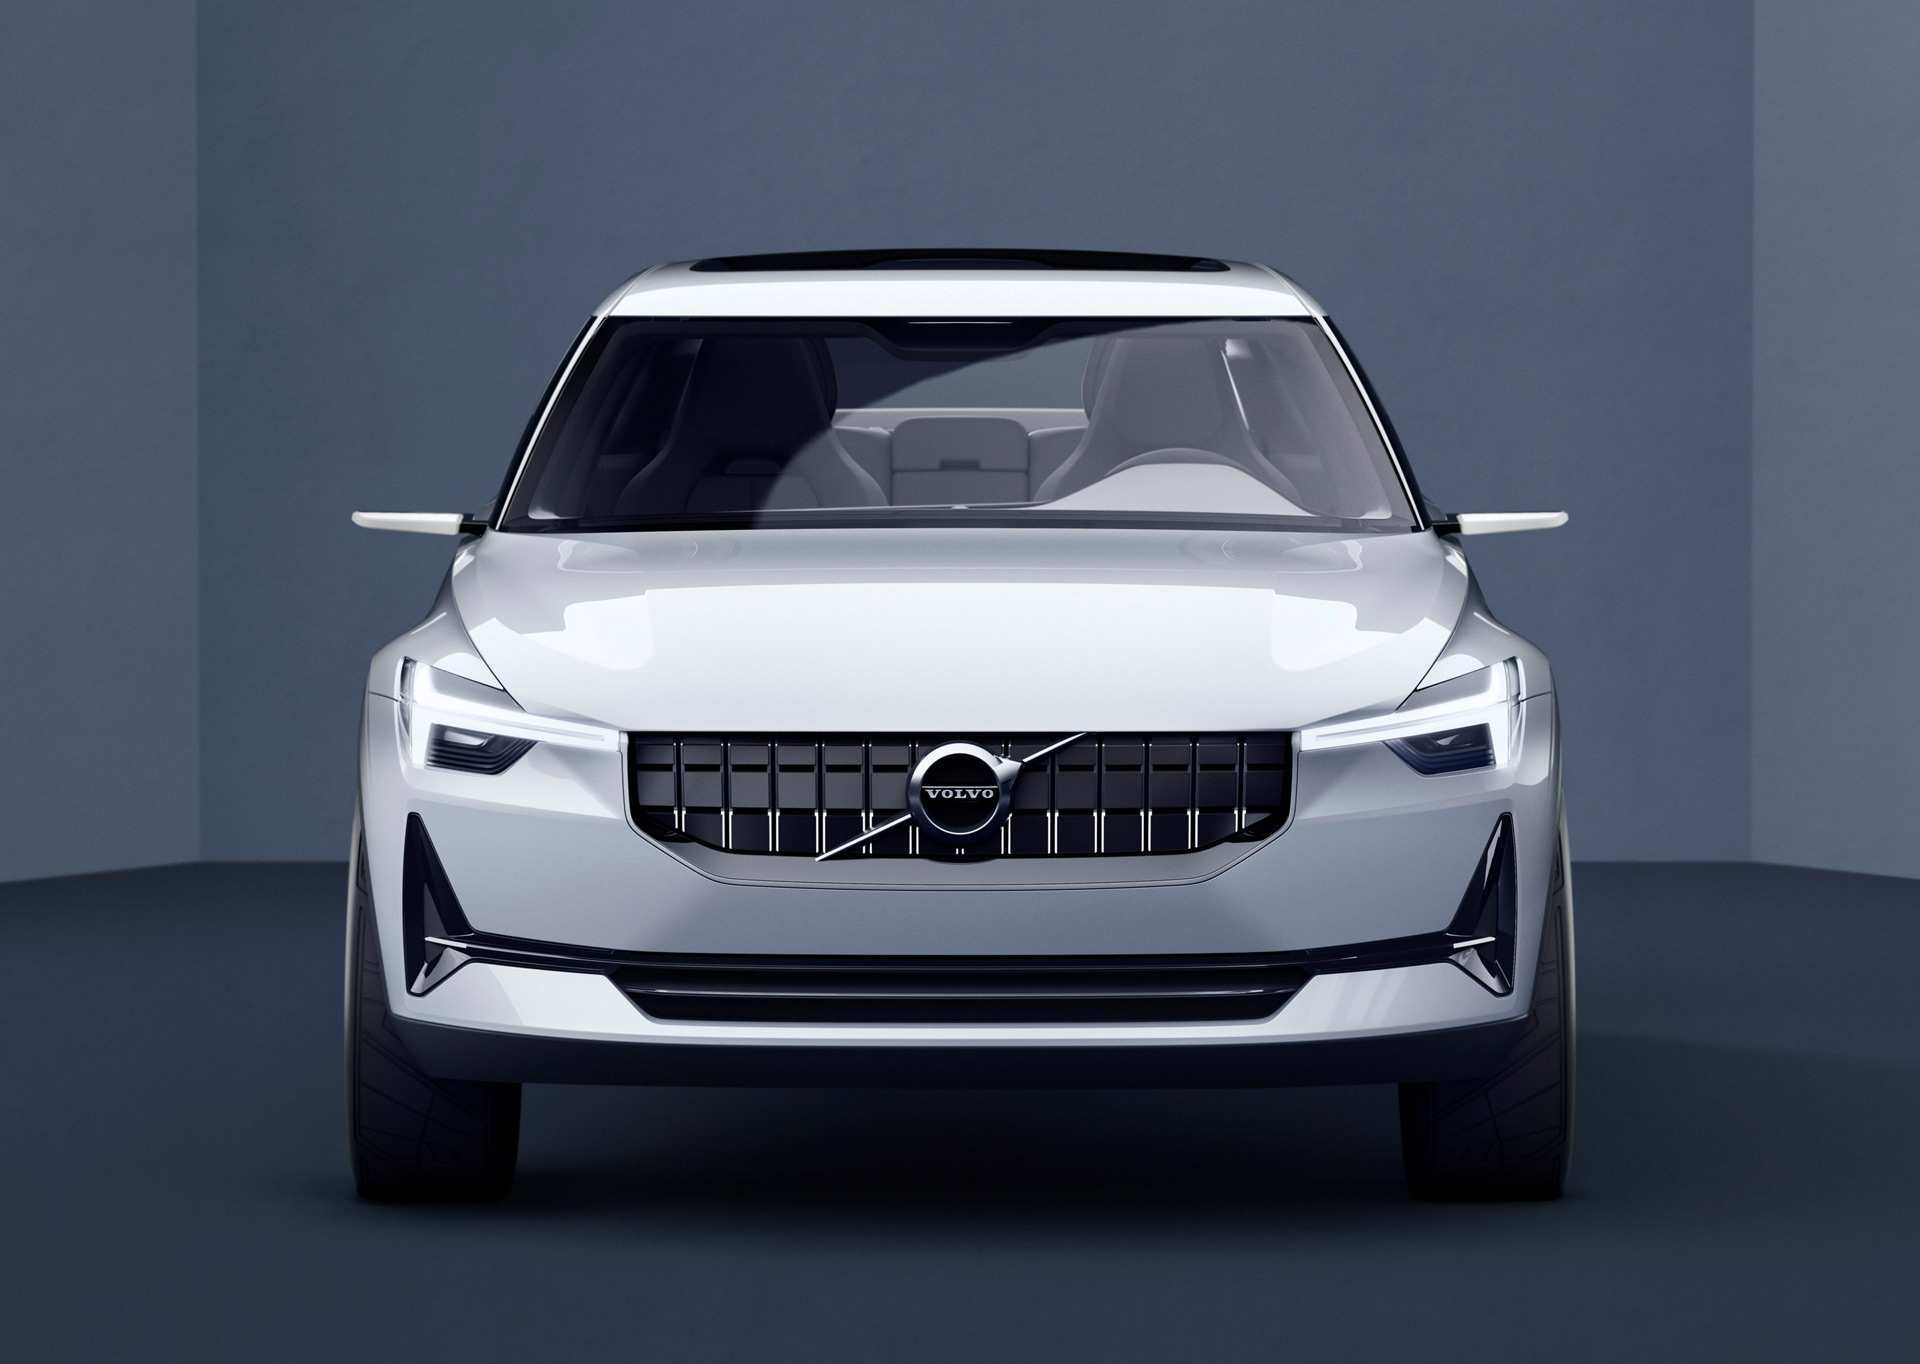 73 All New Volvo Going Electric By 2020 Price and Review for Volvo Going Electric By 2020